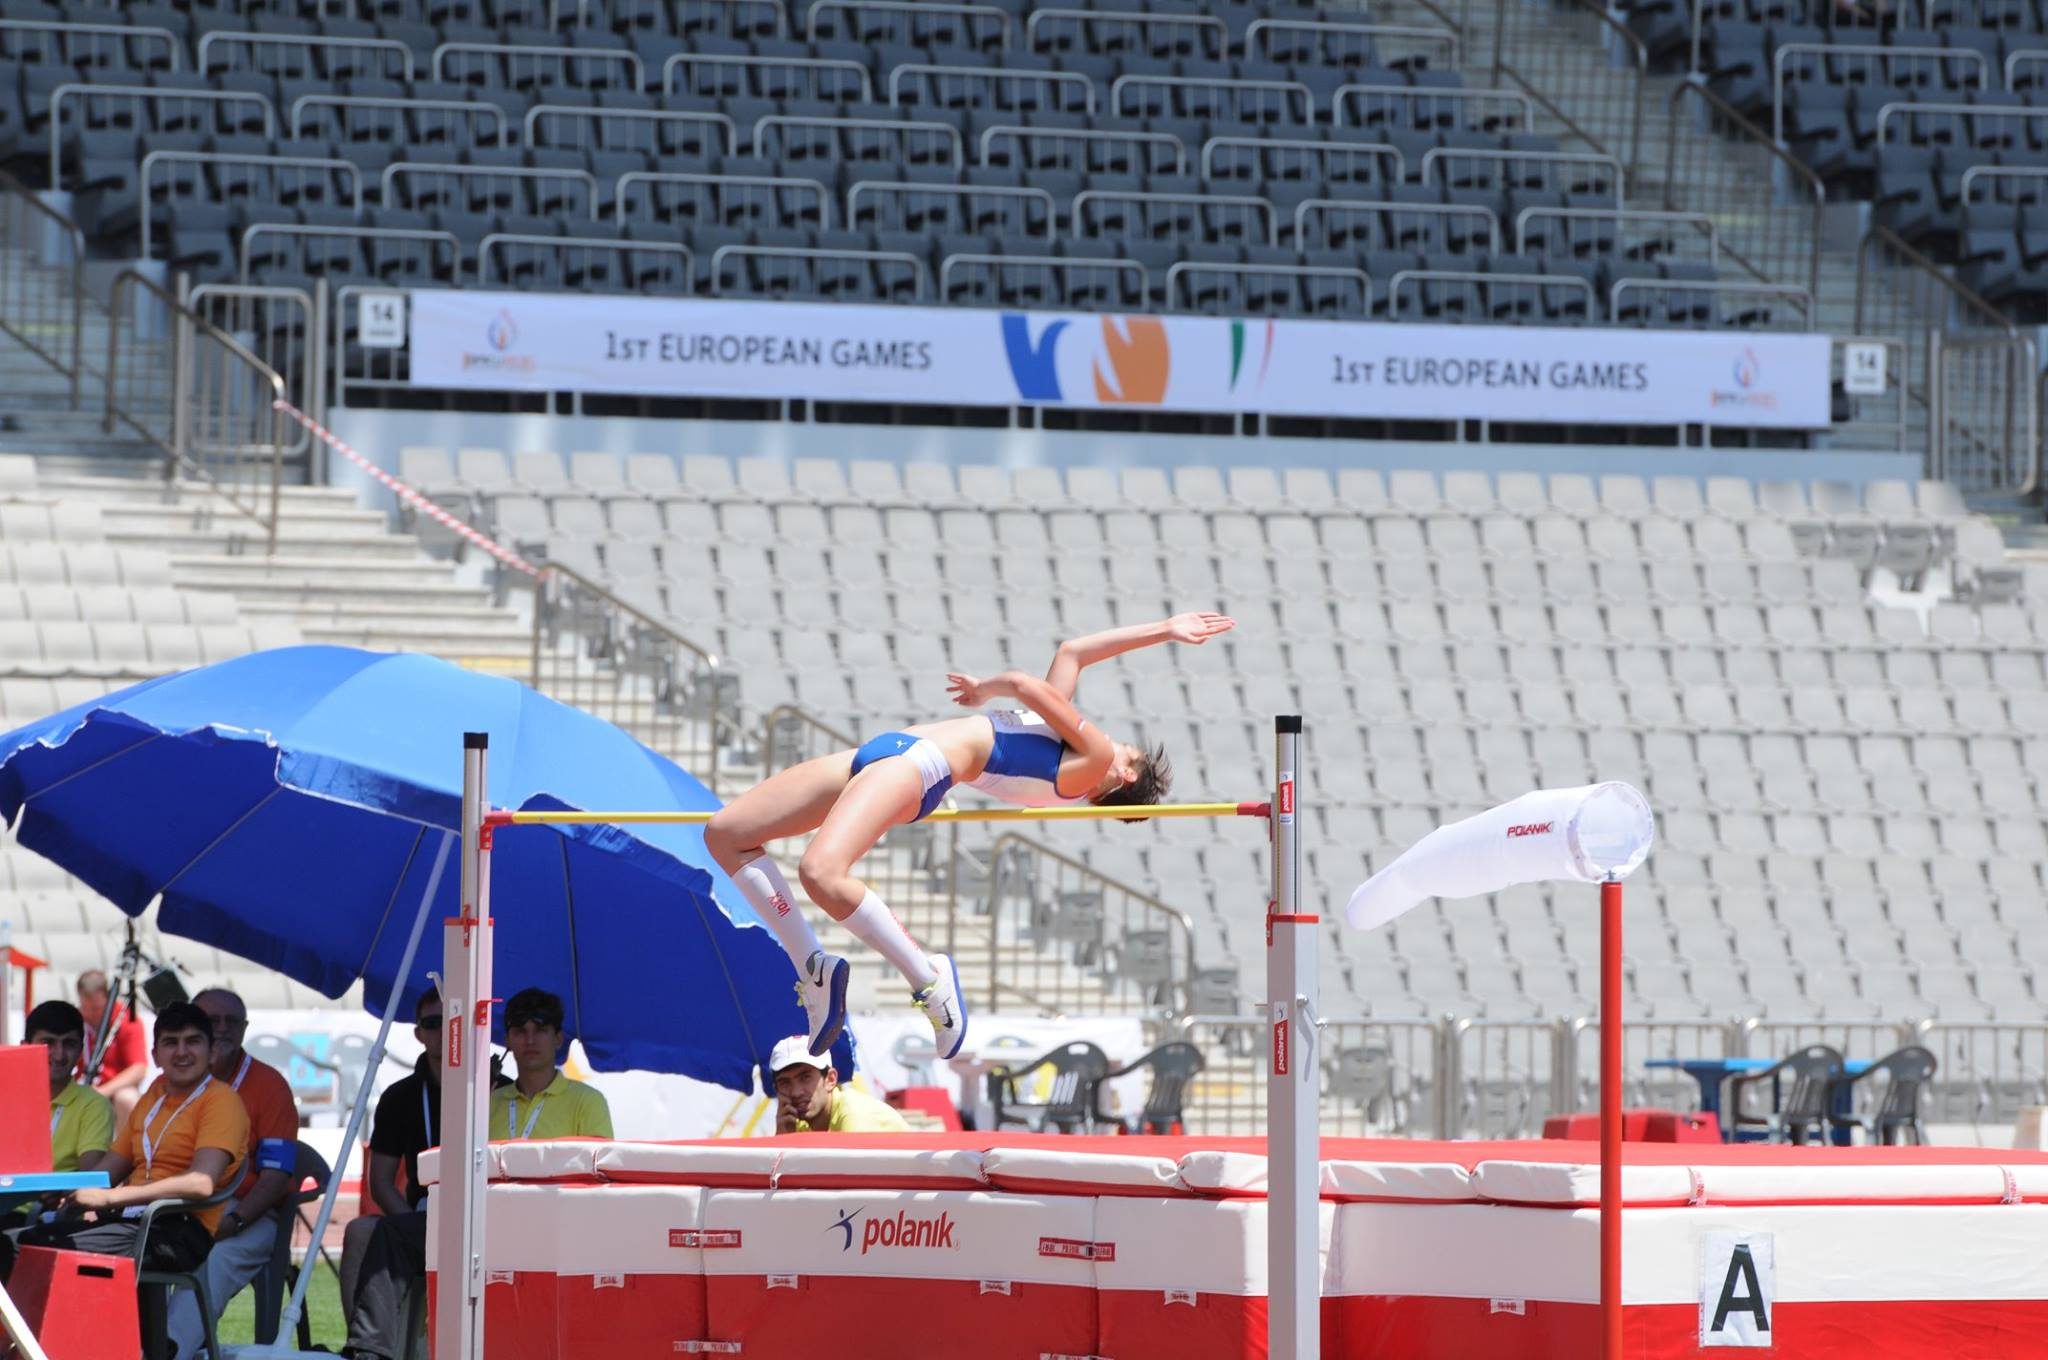 There was a high standard of competition in events during the European Youth Olympic Trials in Baku, including the women's high jump ©Baku 2015